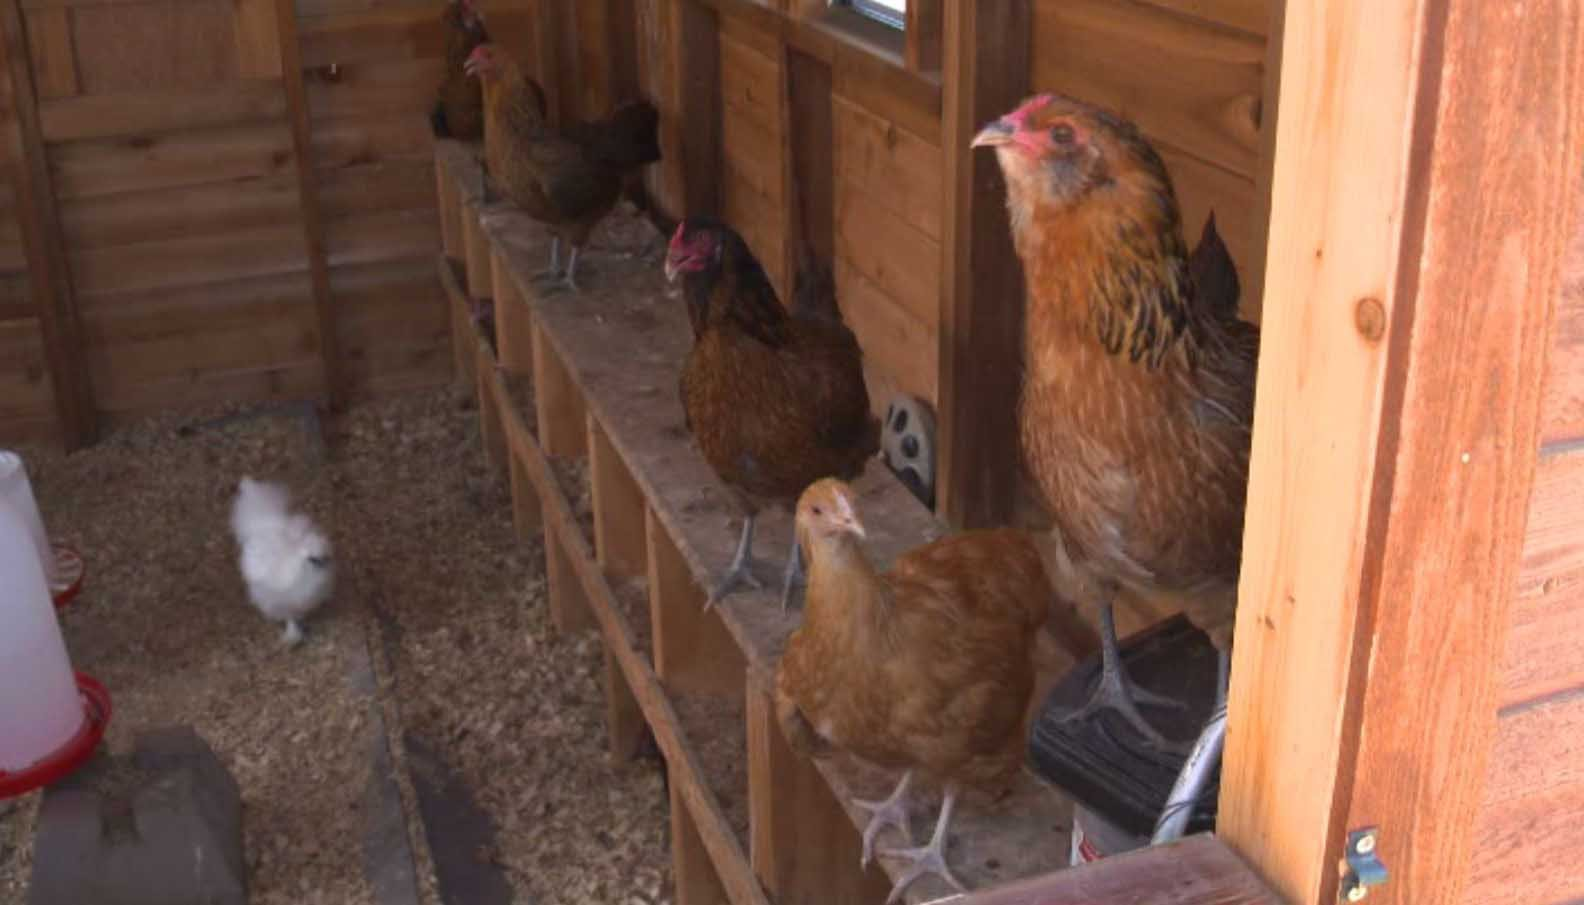 Raising birds in the backyard may pose a serious health risk. (Source: WLNE/KPIX via CNN)